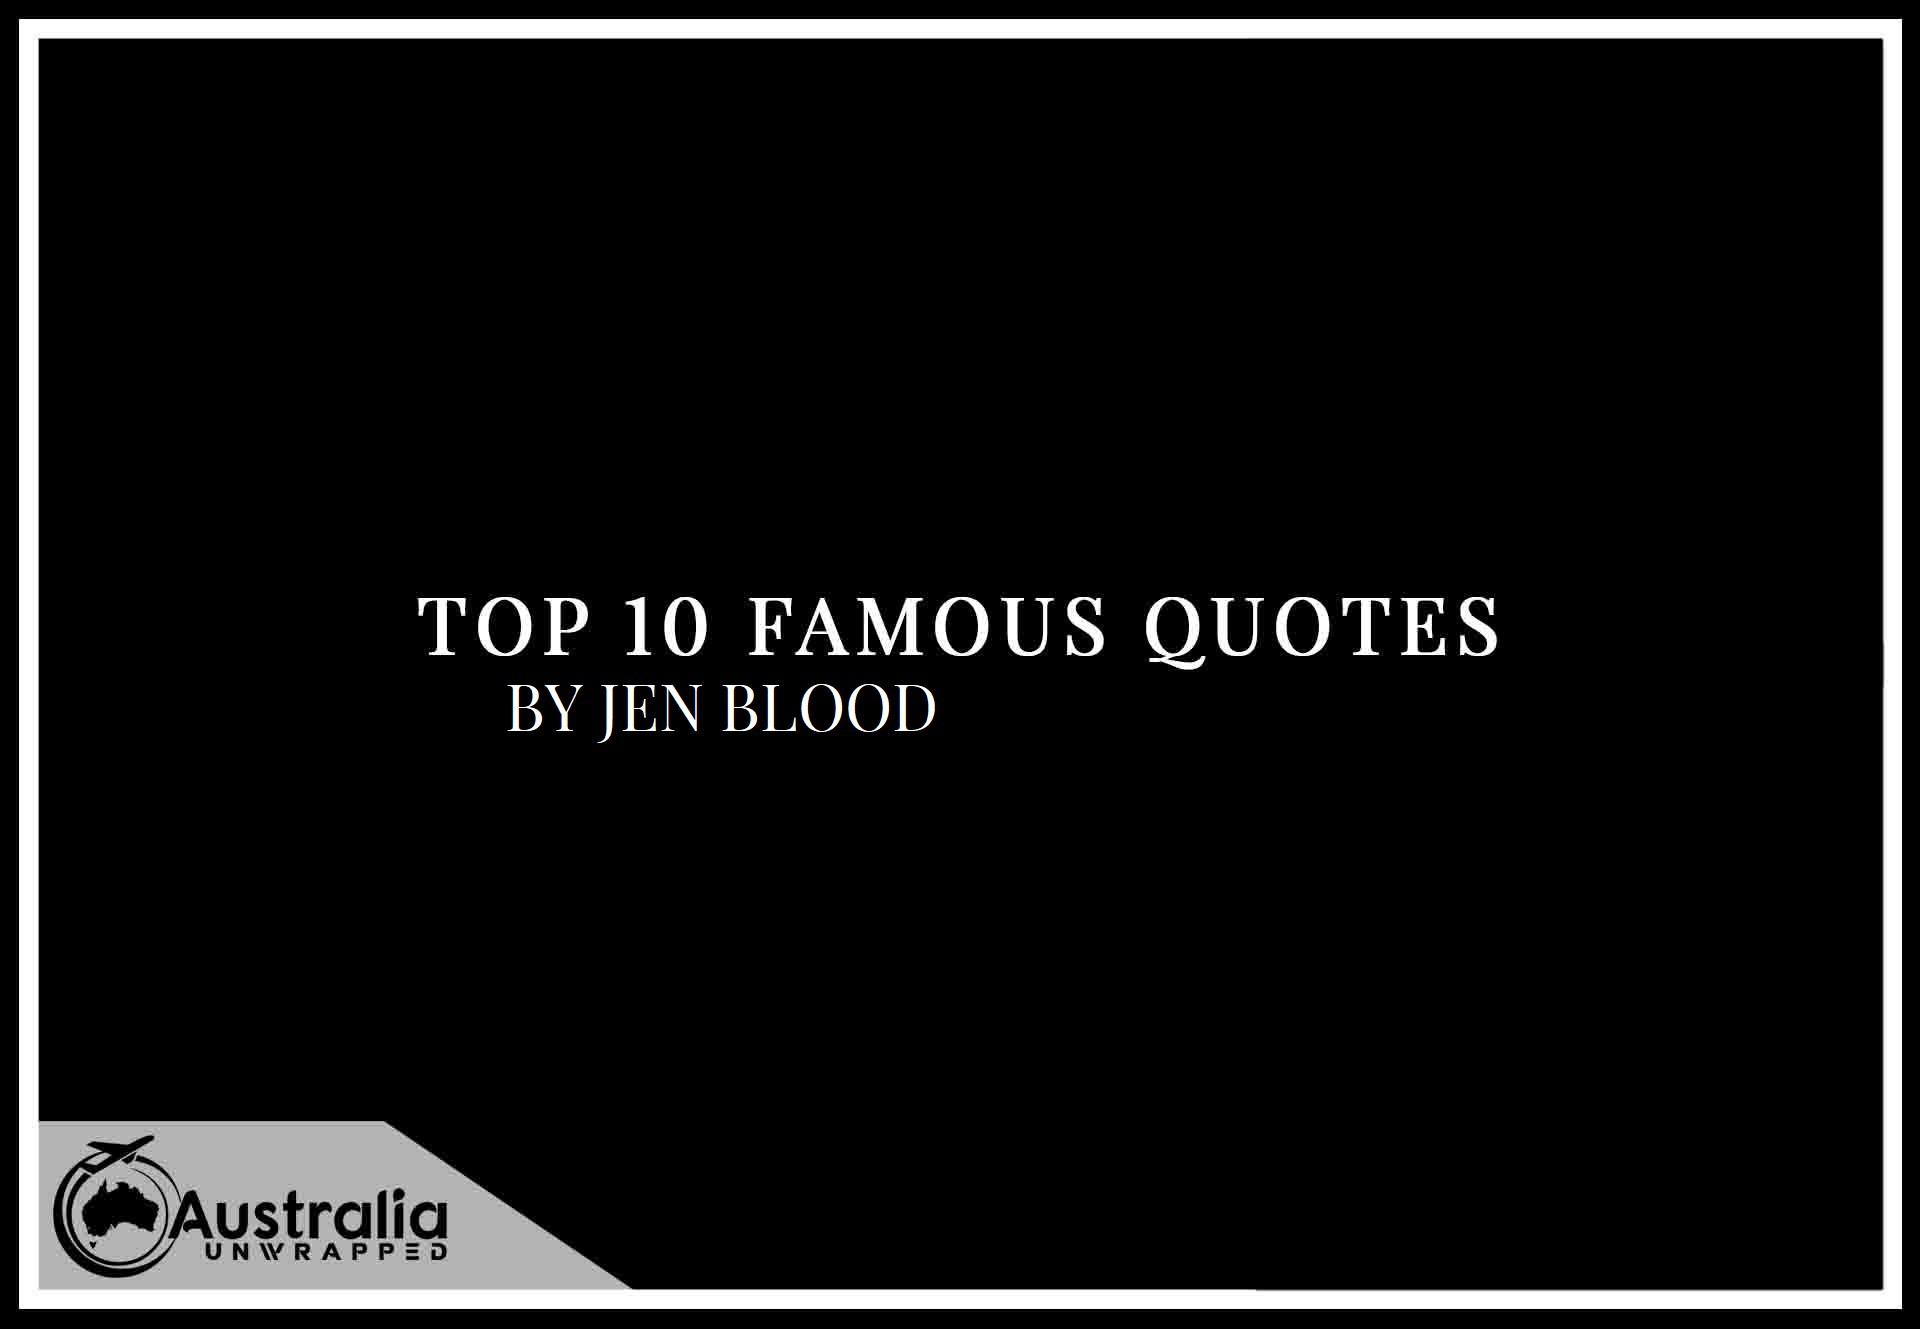 Top 10 Famous Quotes by Author Jen Blood